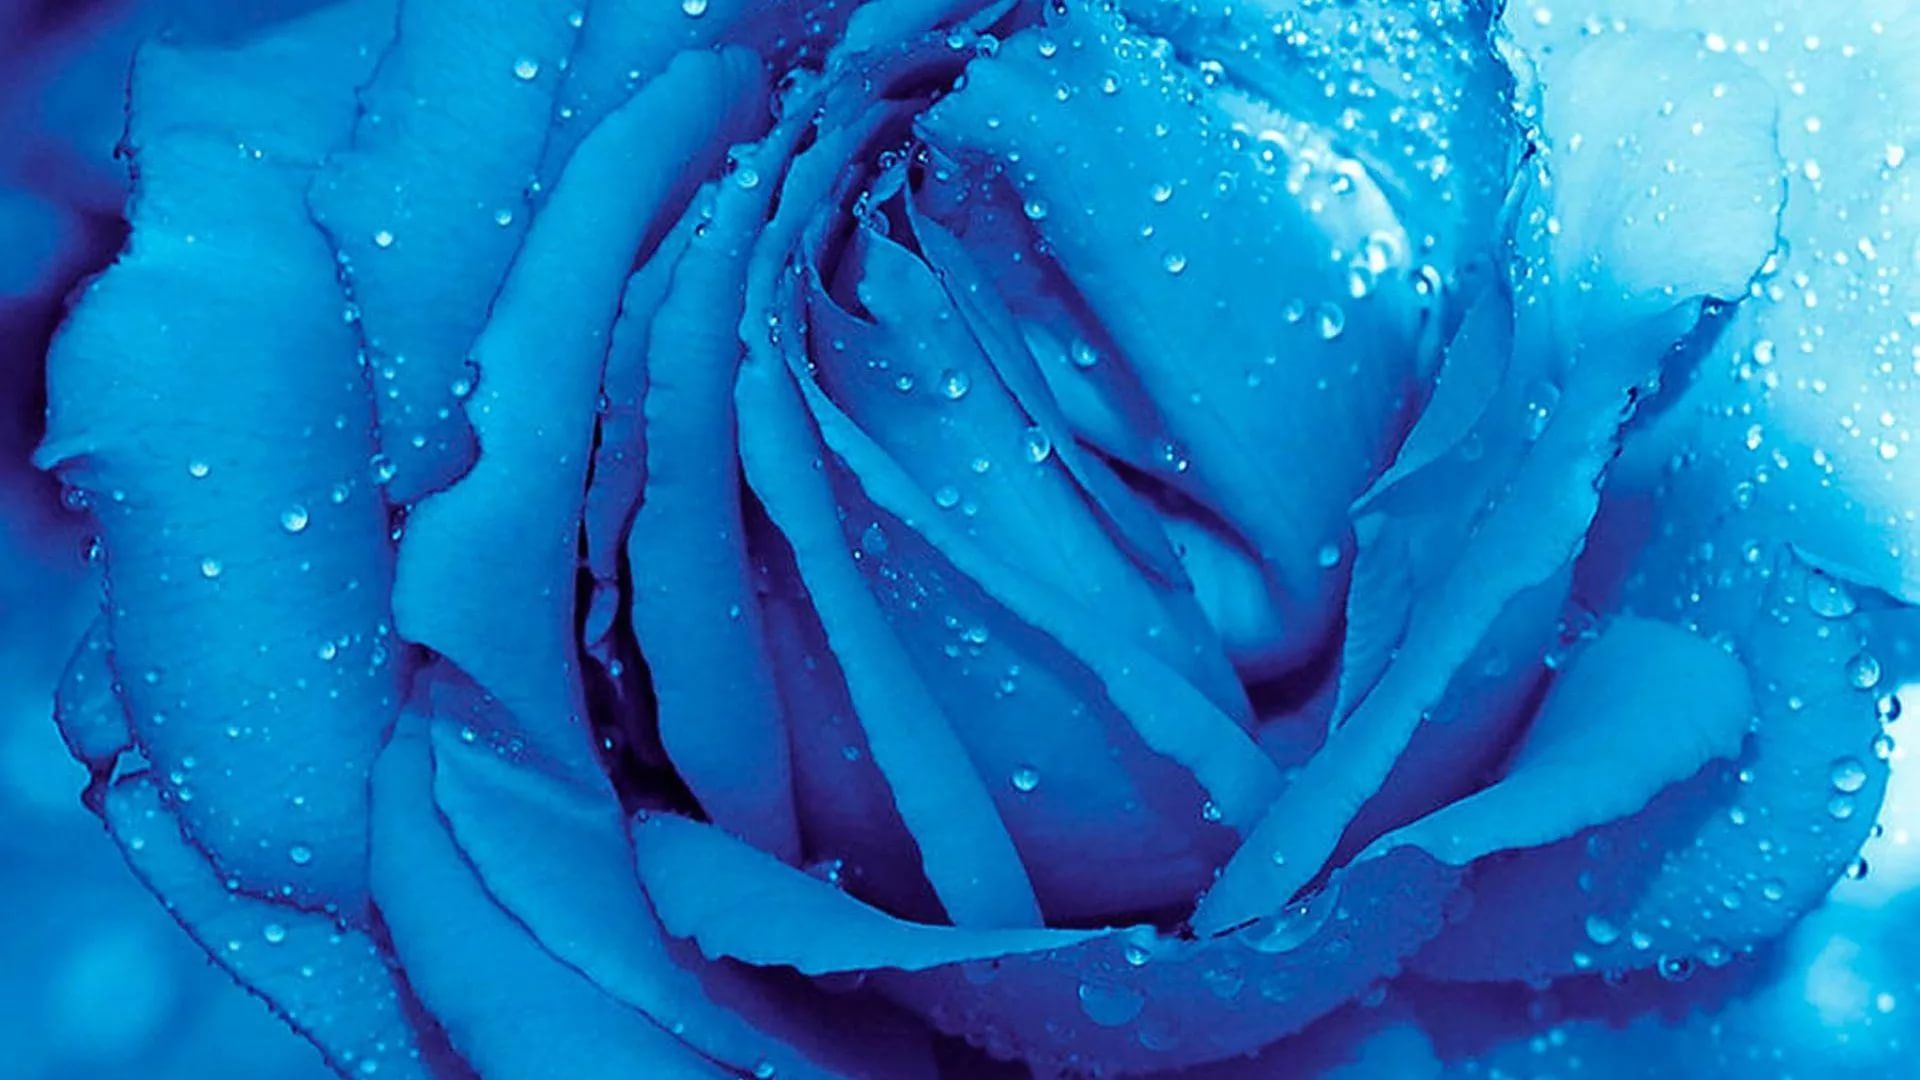 Blue Rose HD Desktop Wallpaper